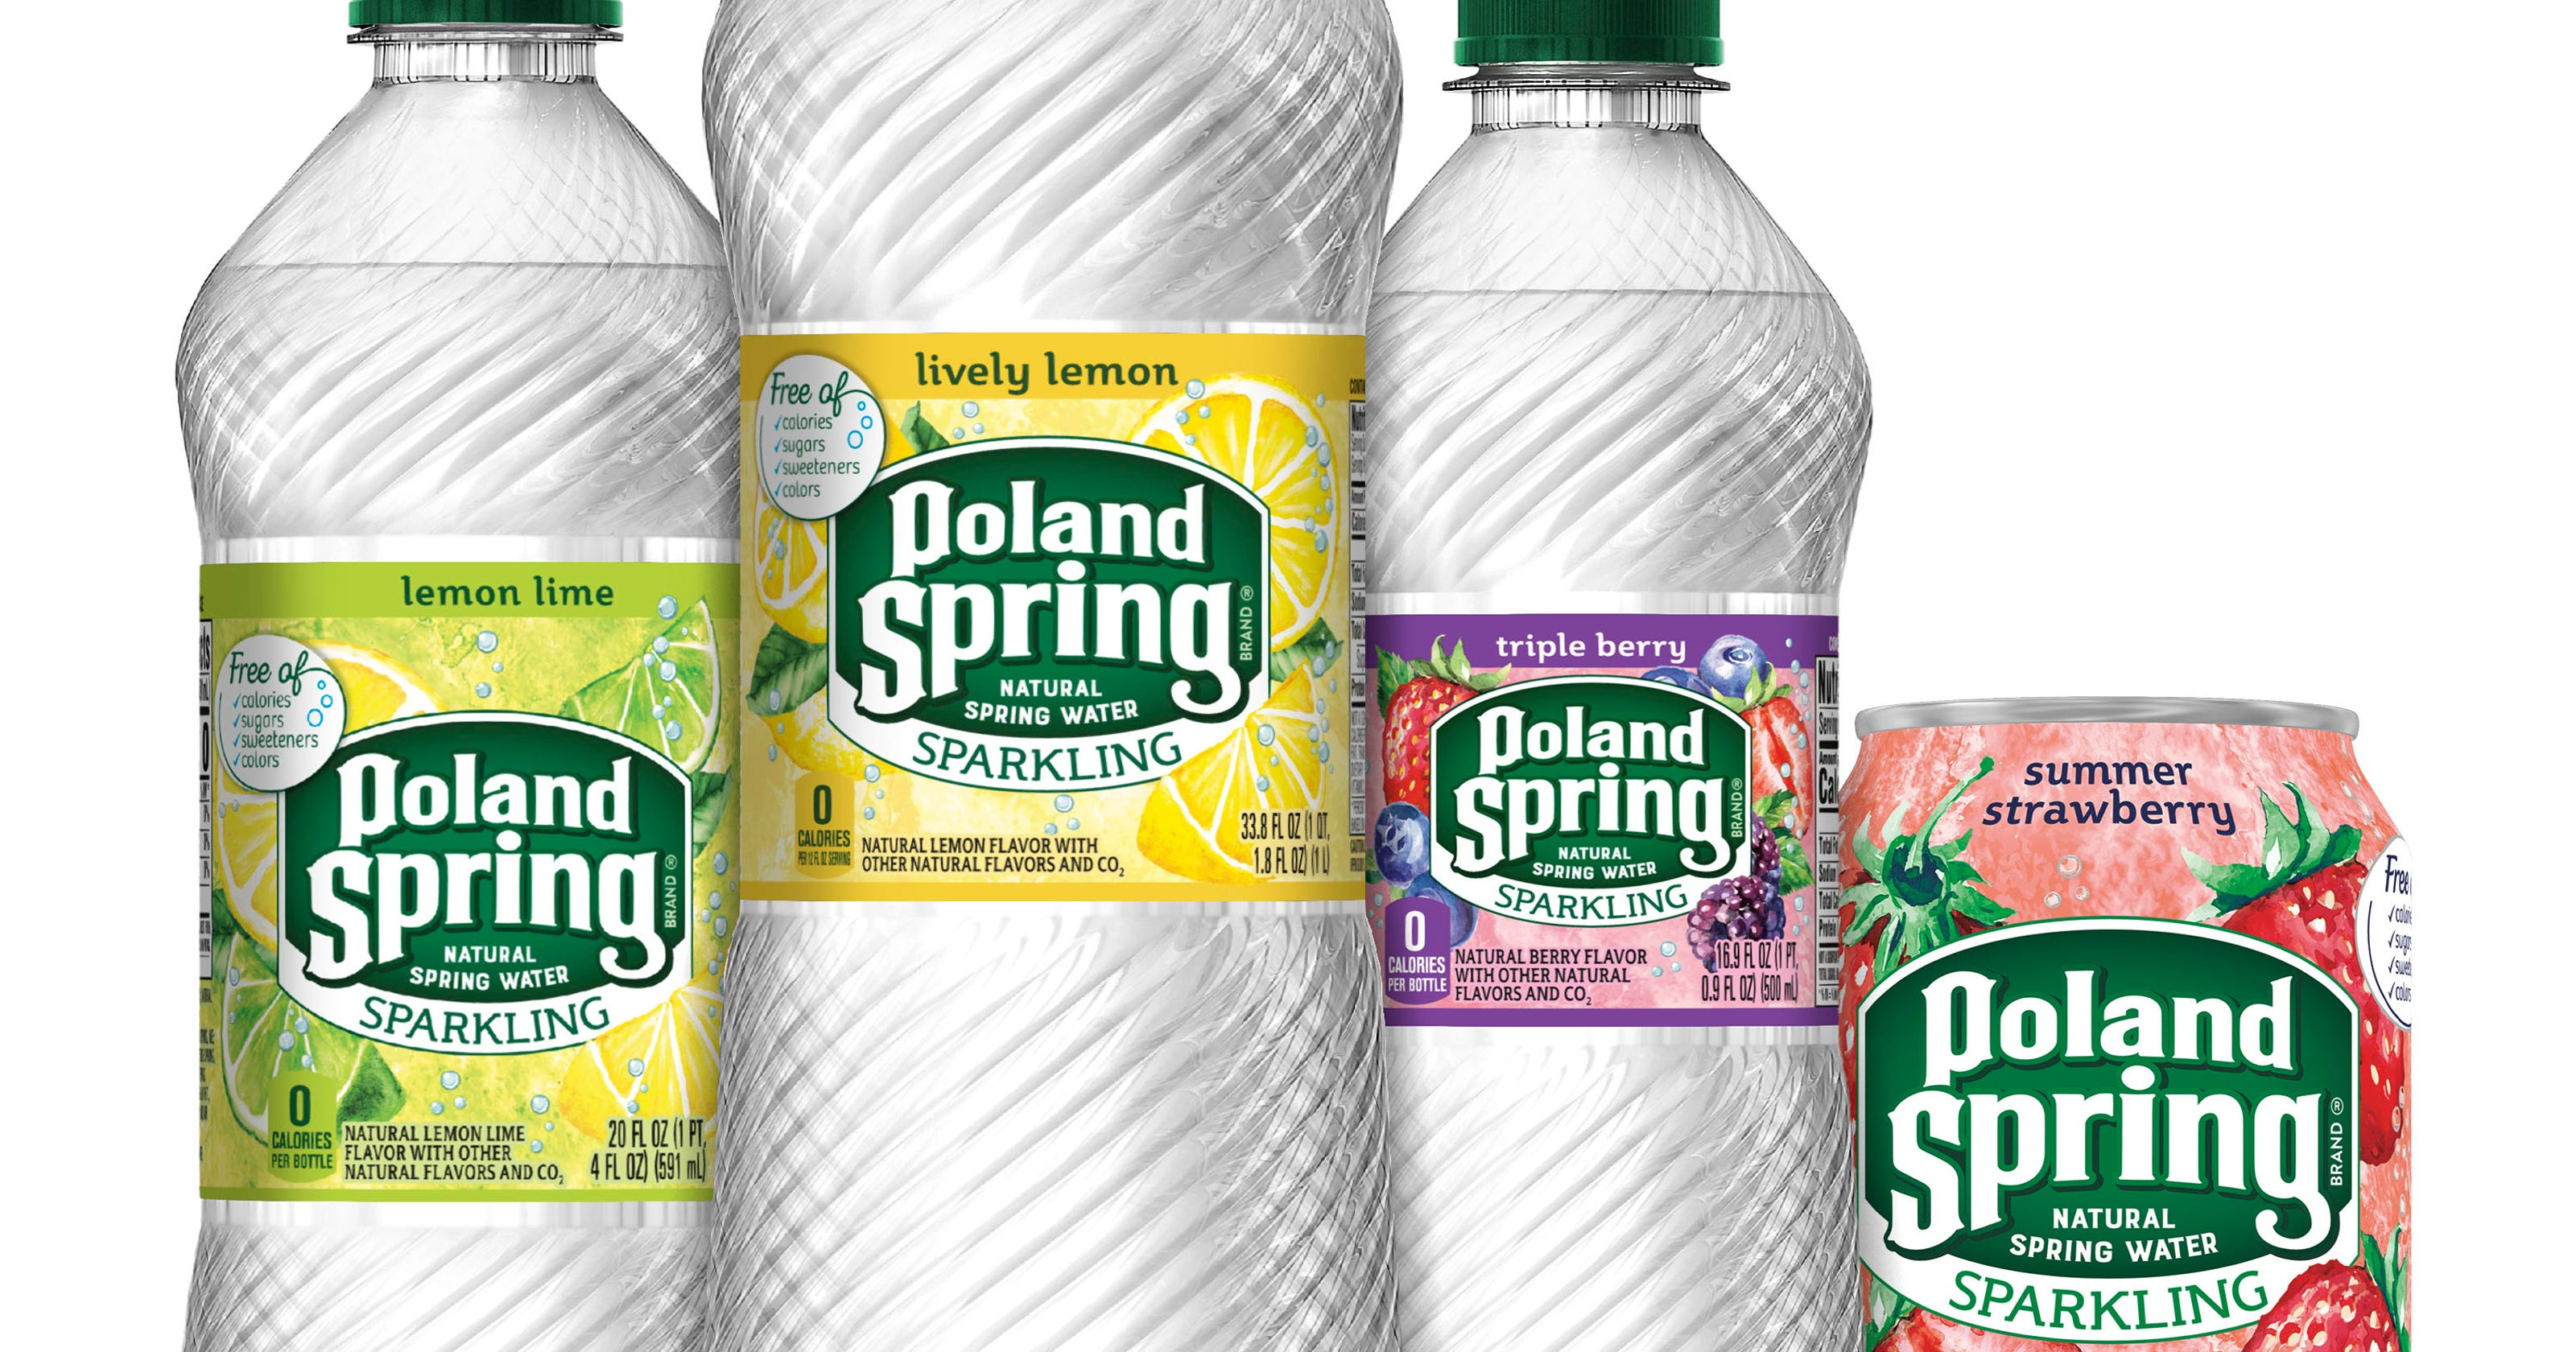 Flavored Sparkling Water Sales Are Bubbling Up